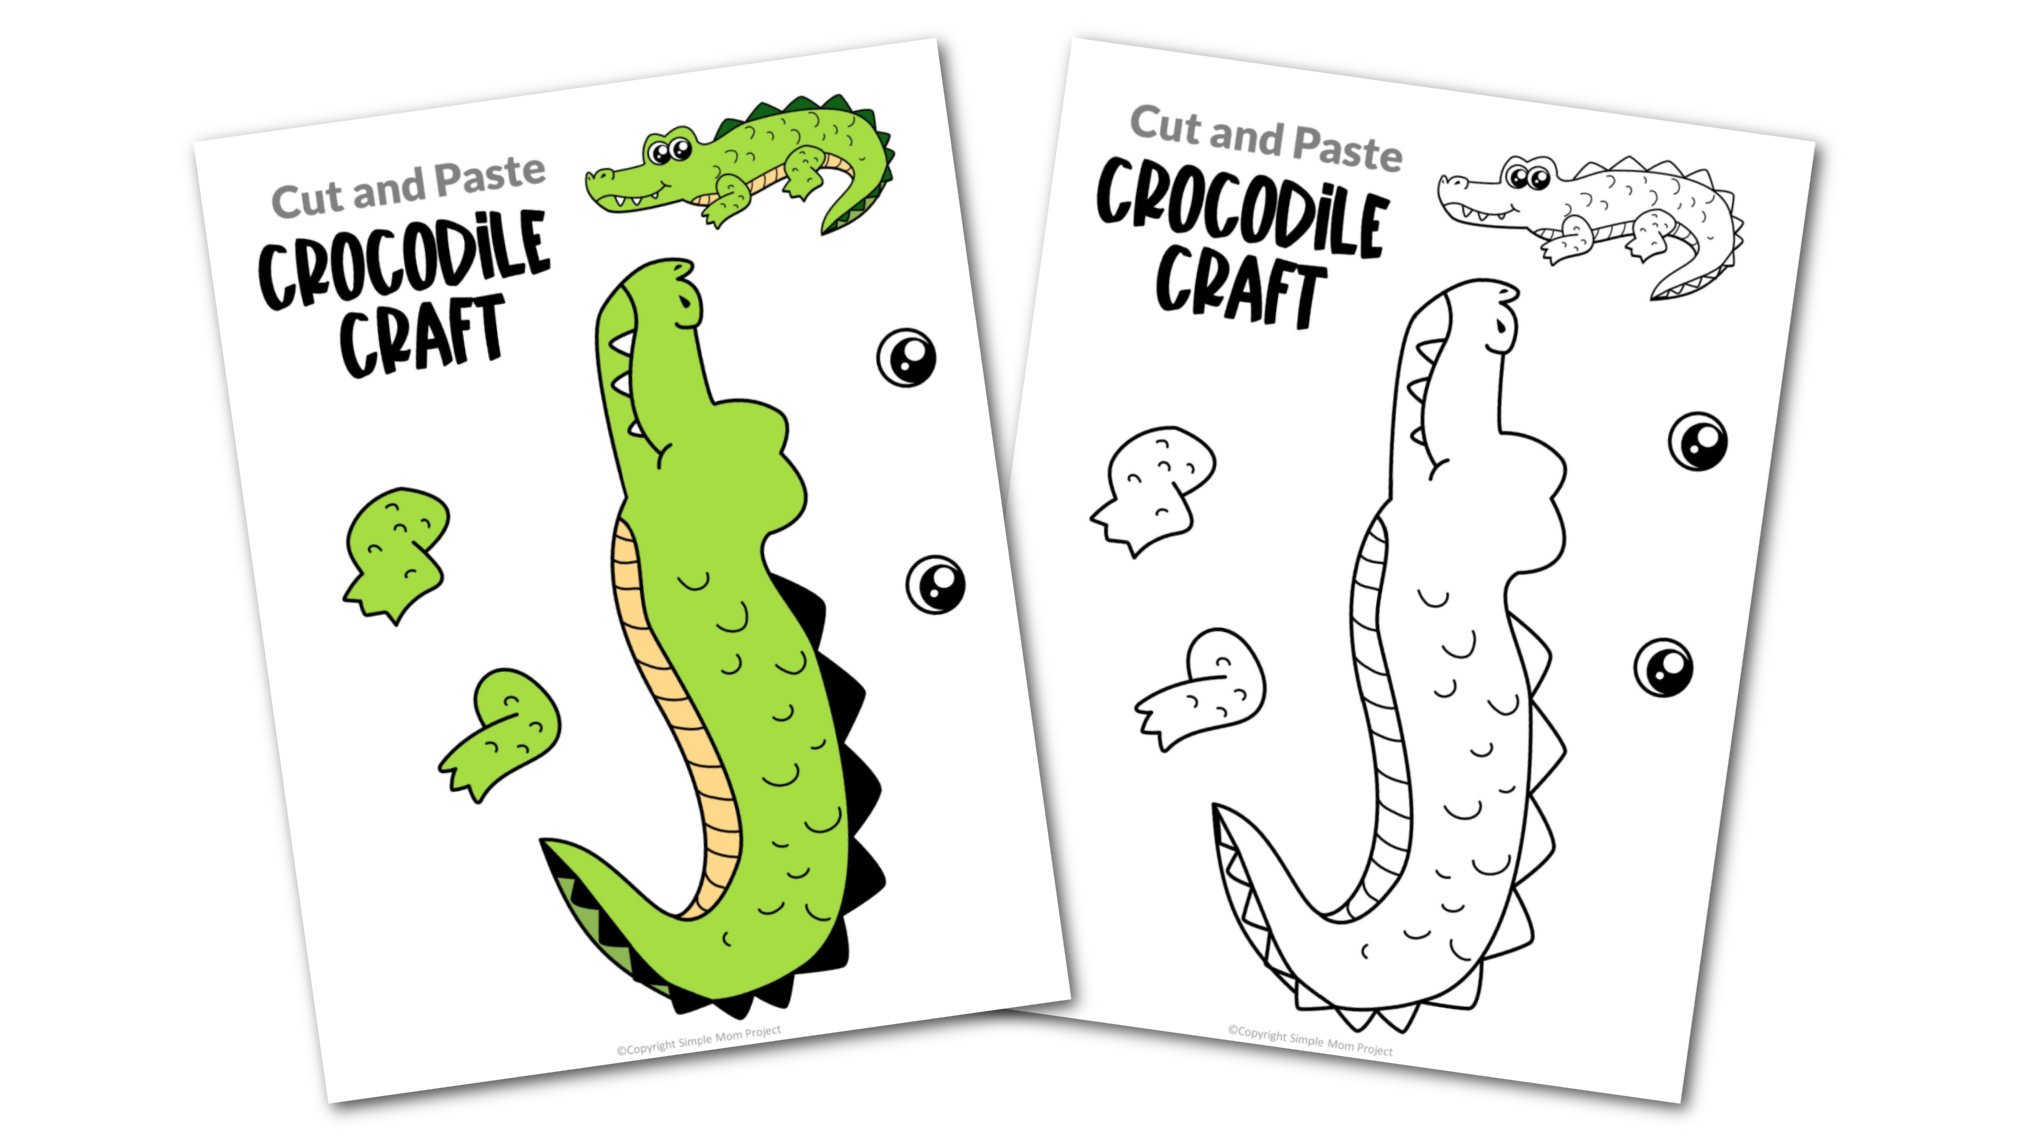 Crocodile Cut and Paste Craft for Toddlers, Preschoolers and Kindergarteners Convertkit